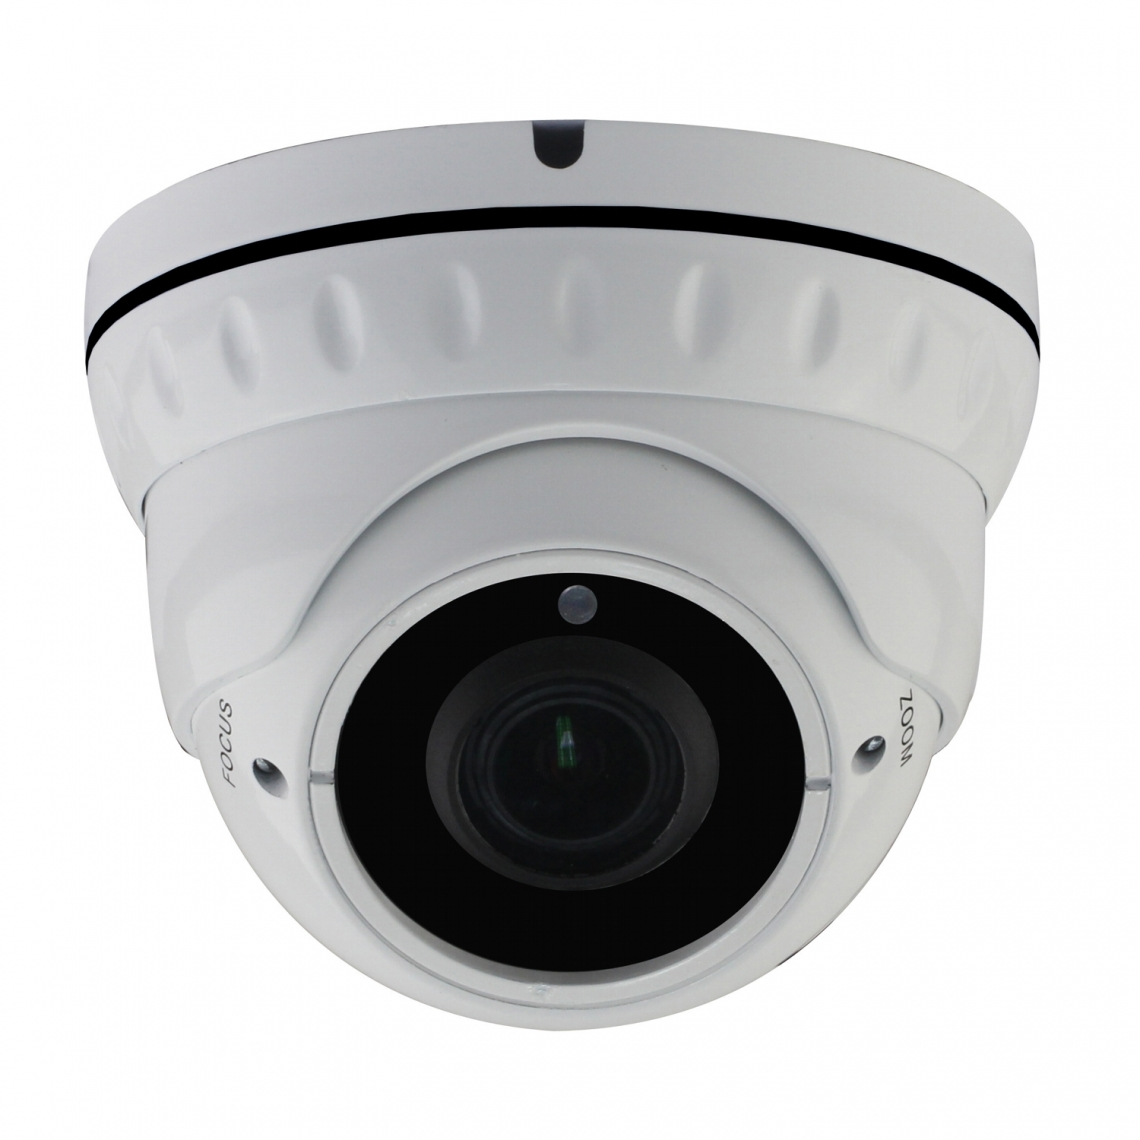 MINI DOME AHD CAMERA - TVT73FAHD/3